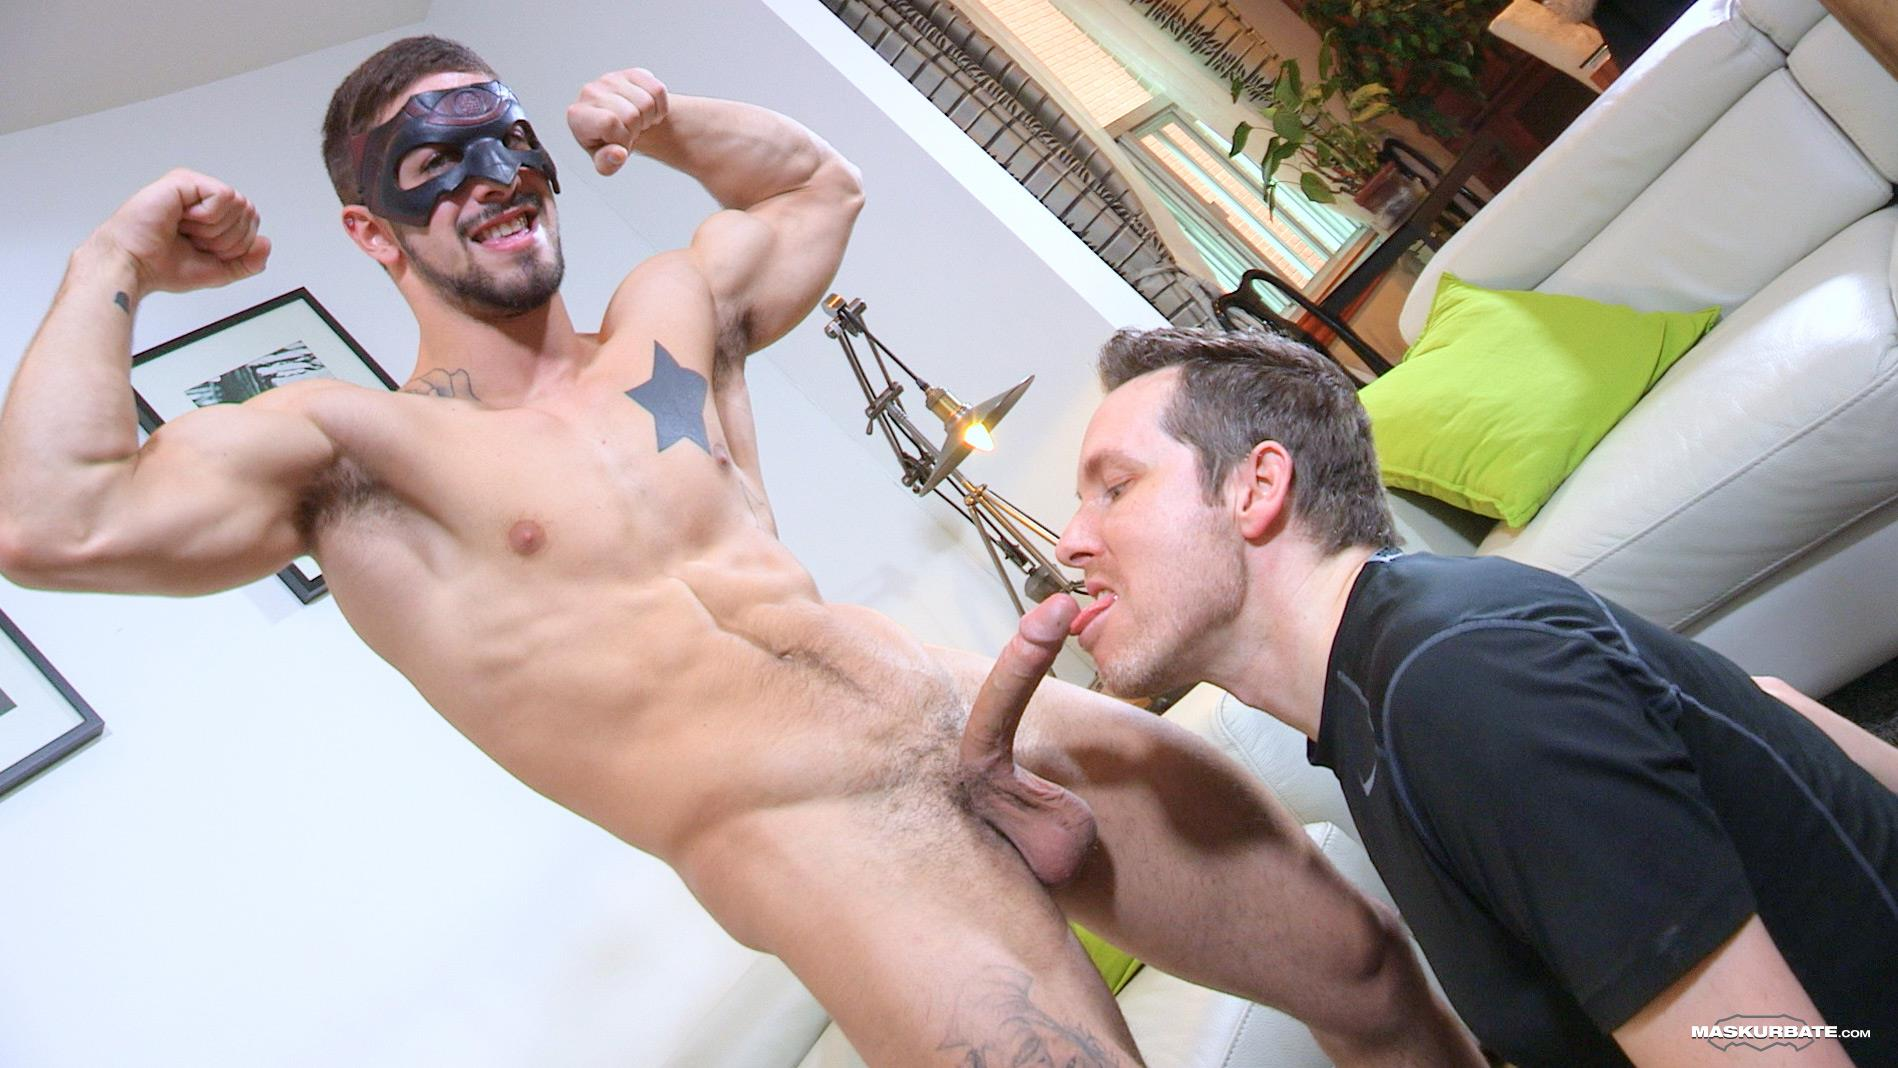 Maskurbate Carl Straight Muscle Jock With A Big Cock Amateur Gay Porn 11 Straight Muscle Hunk Gets His First Blow Job From Another Guy